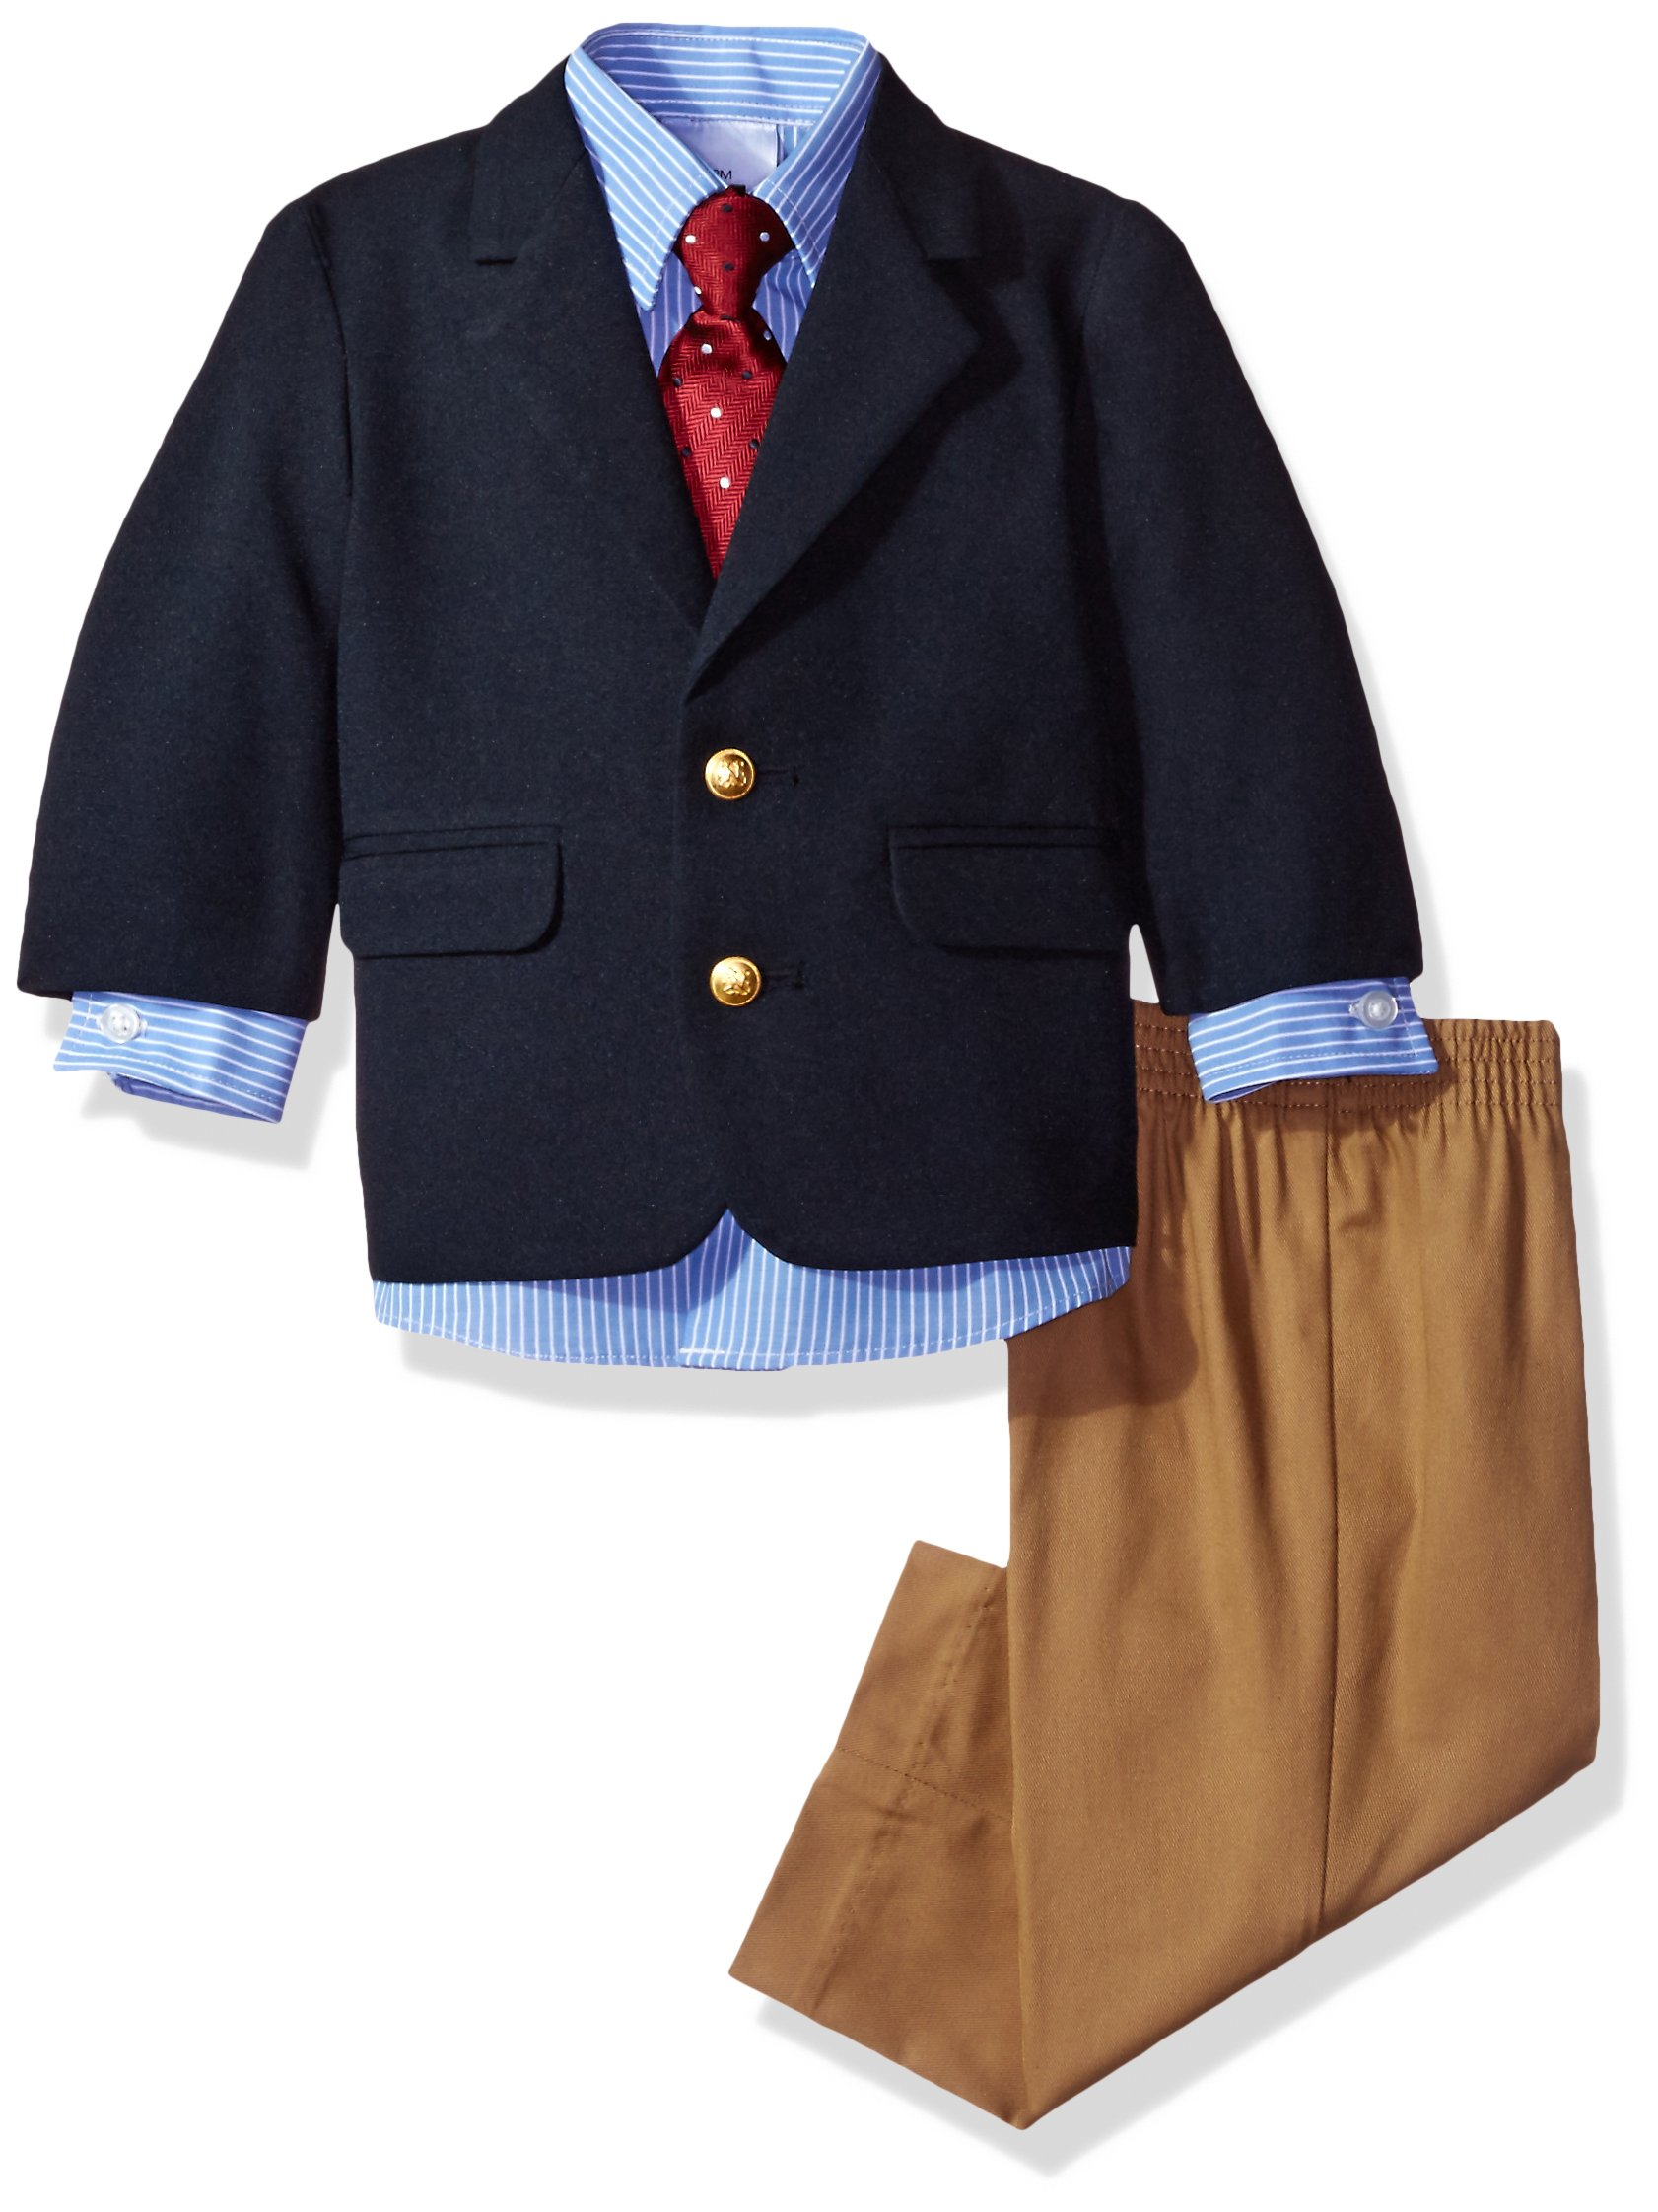 Nautica Boys' Suit Set with Jacket, Pant, Shirt, and Tie, Dark Blue, 18M by Nautica